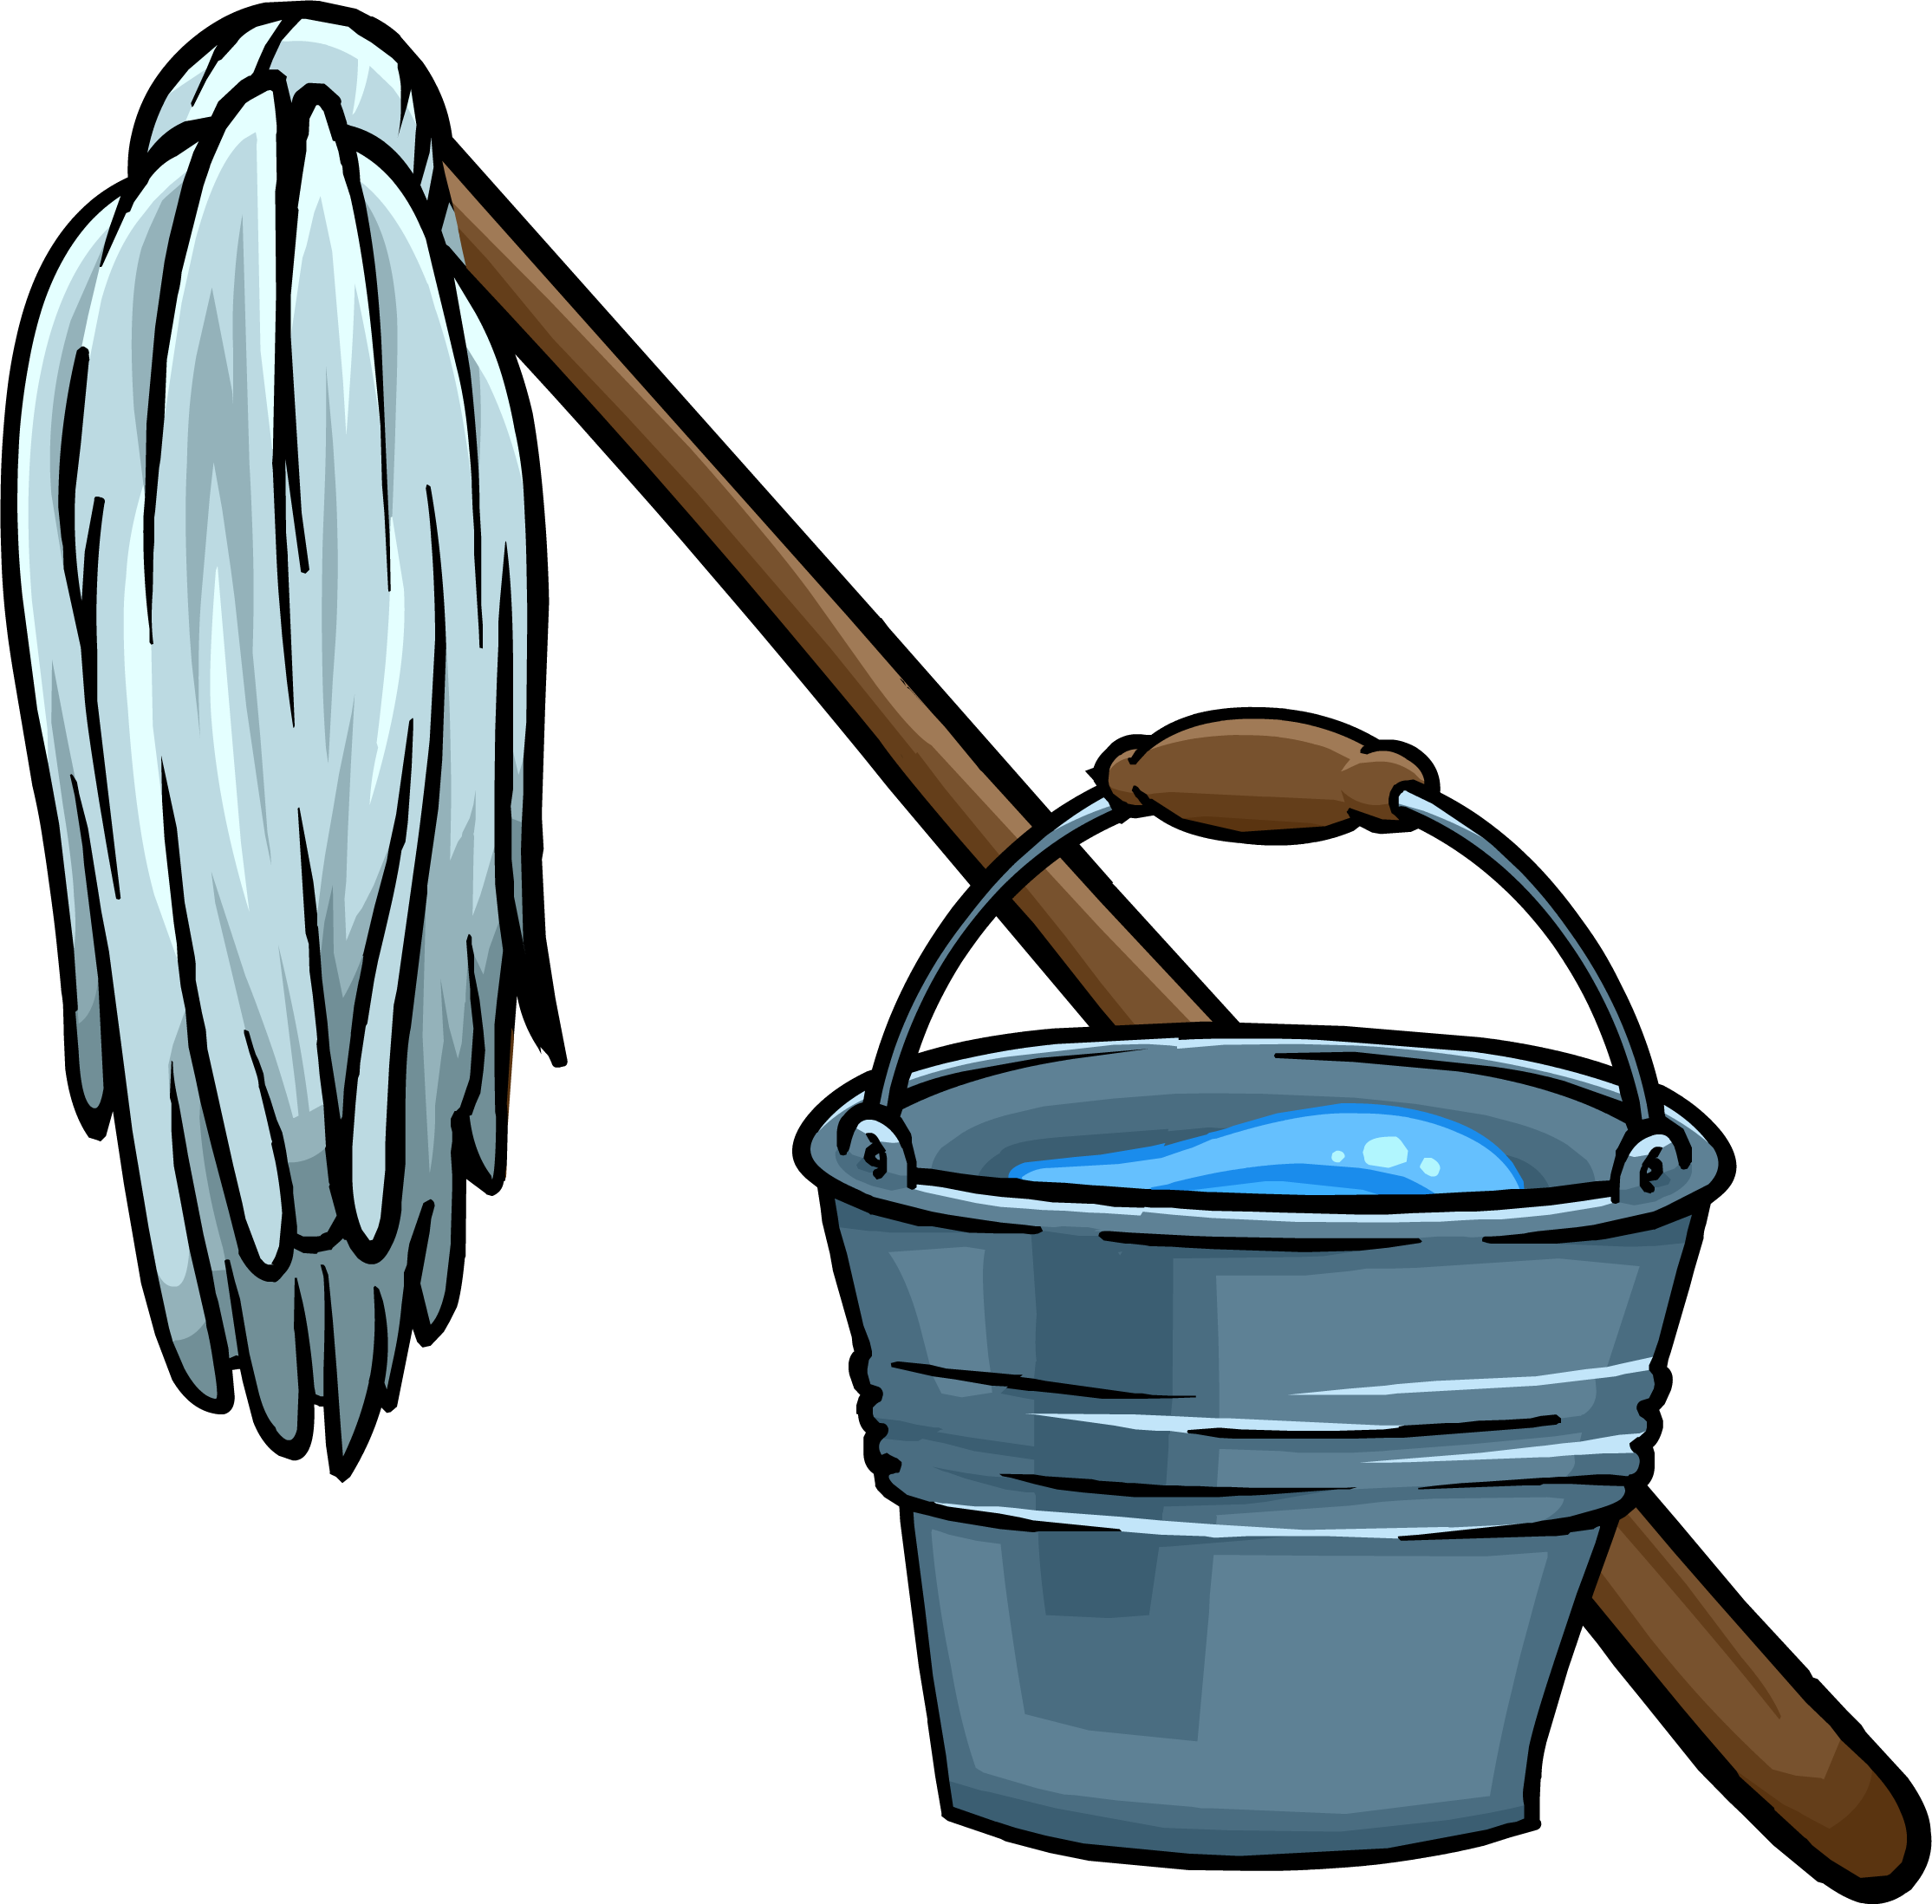 Mop bucket png. Image and icon club